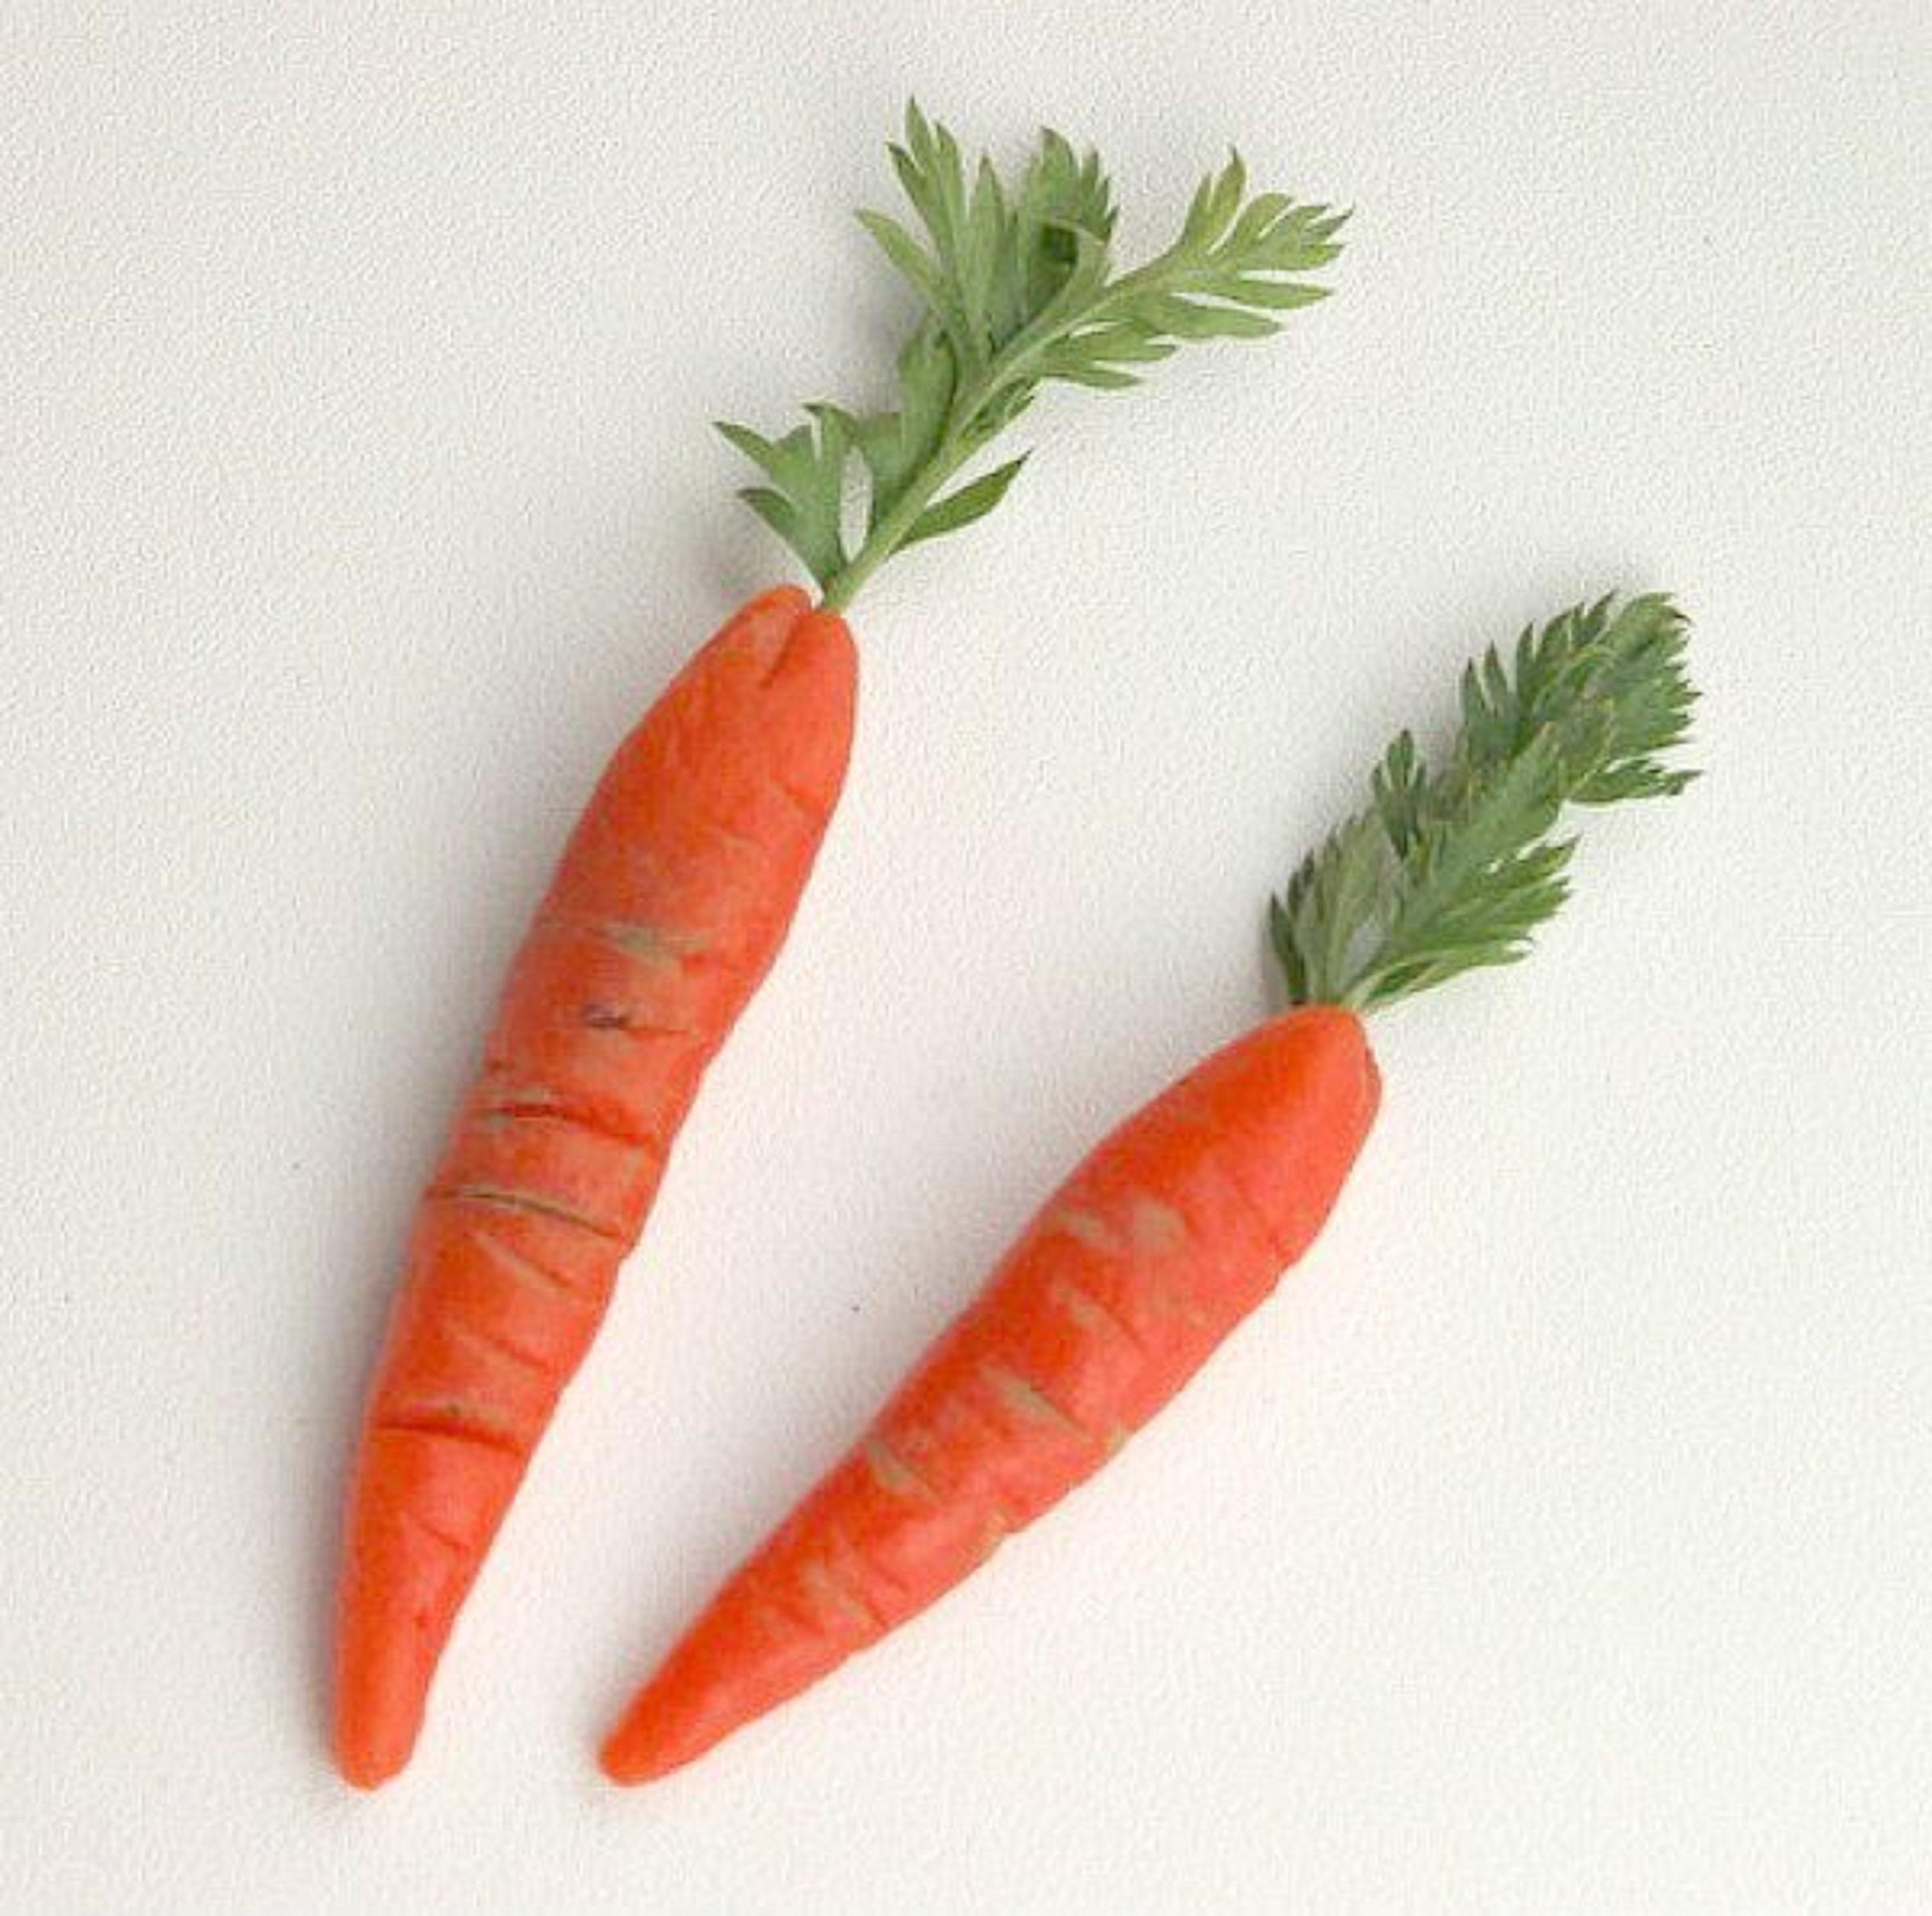 Common fresh Carrots